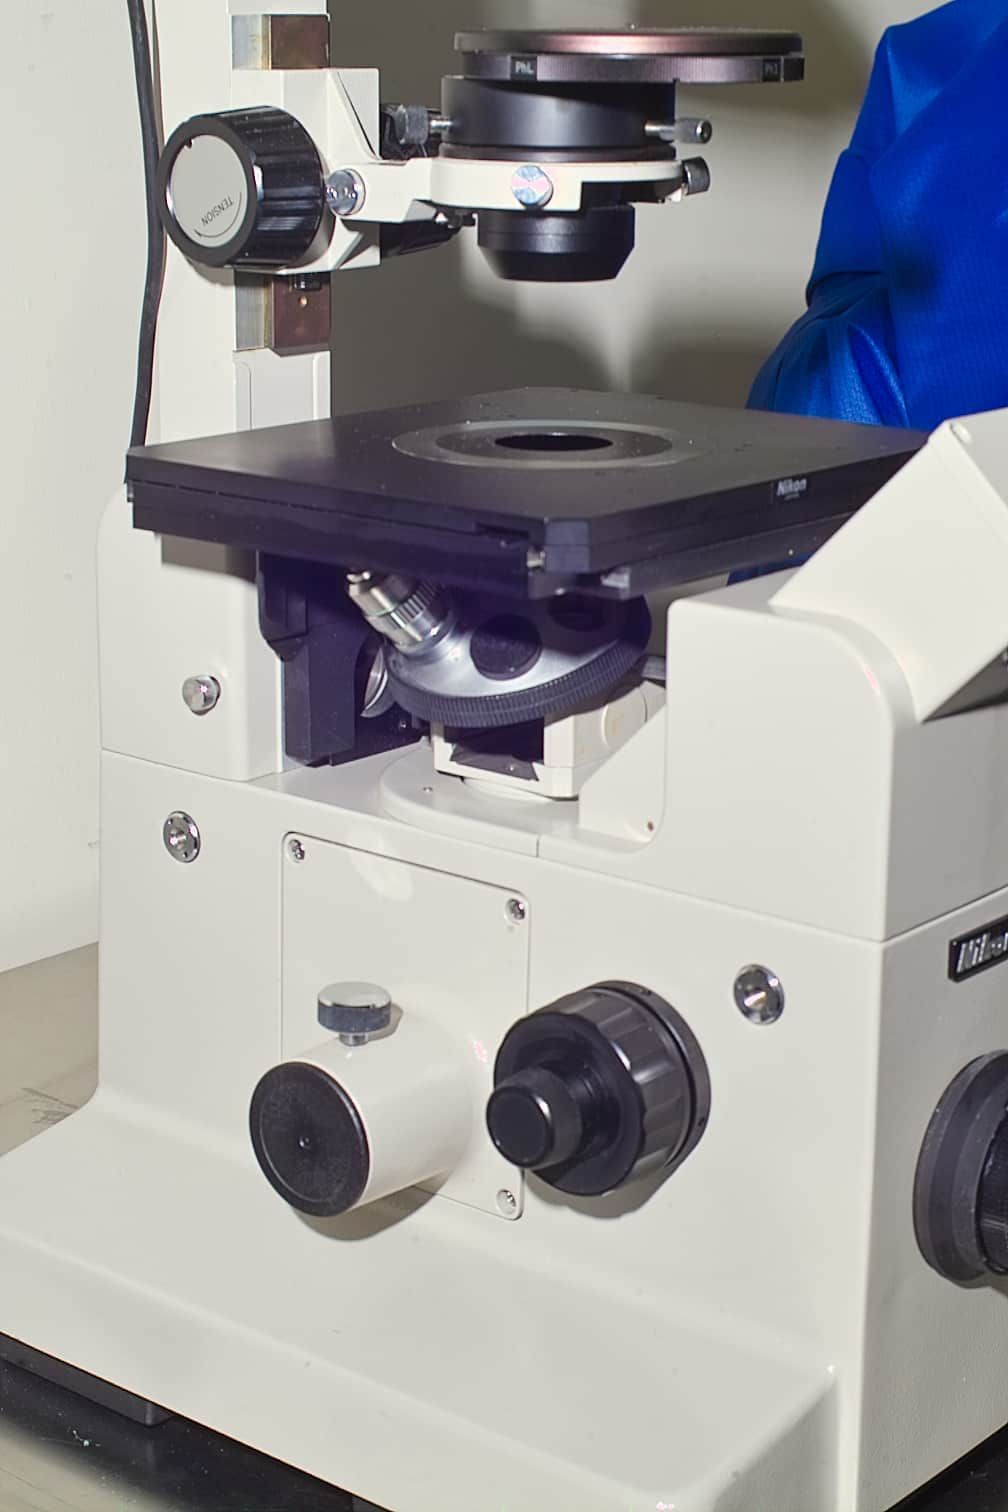 NIKON DIAPHOT TMD INVERTED LIVE CELL MICROSCOPE WITH PHASE CONTRAST AND CAMERA PORT